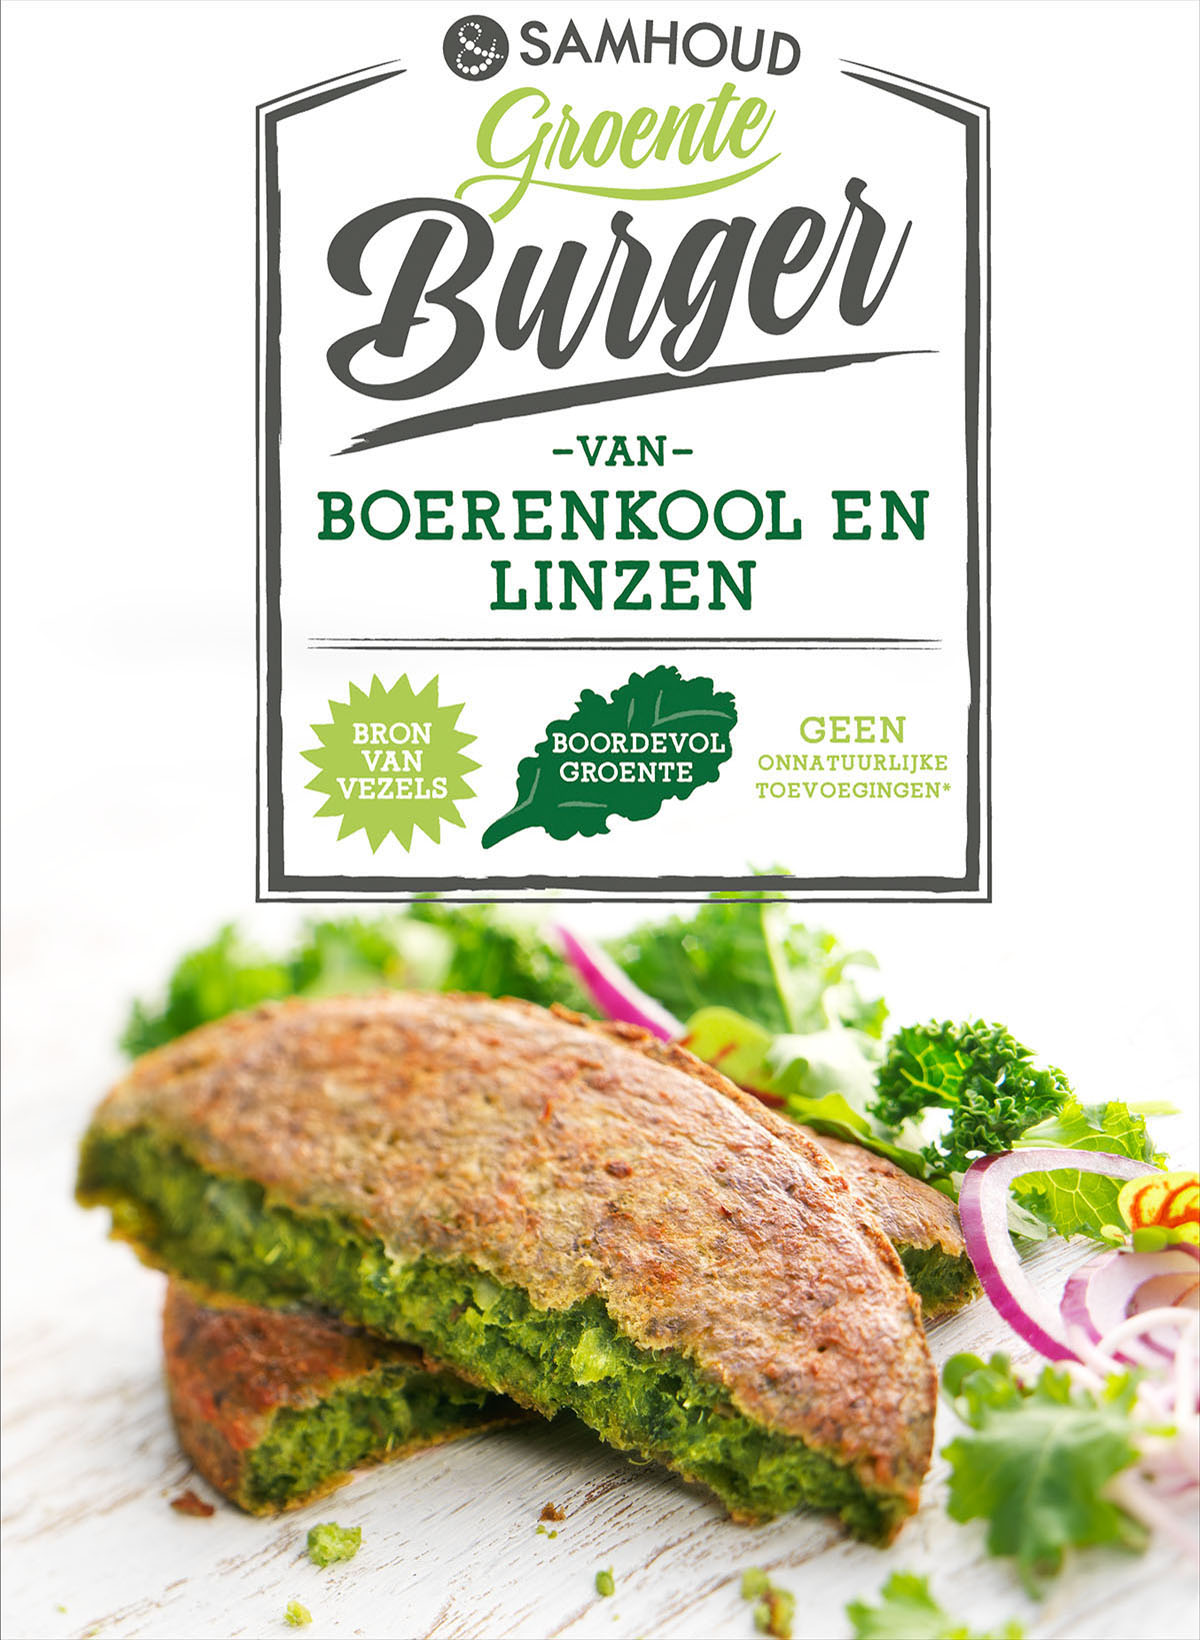 Packaging photography of Samhoud's kale and lentil burger made by Studio_m Photography Amsterdam